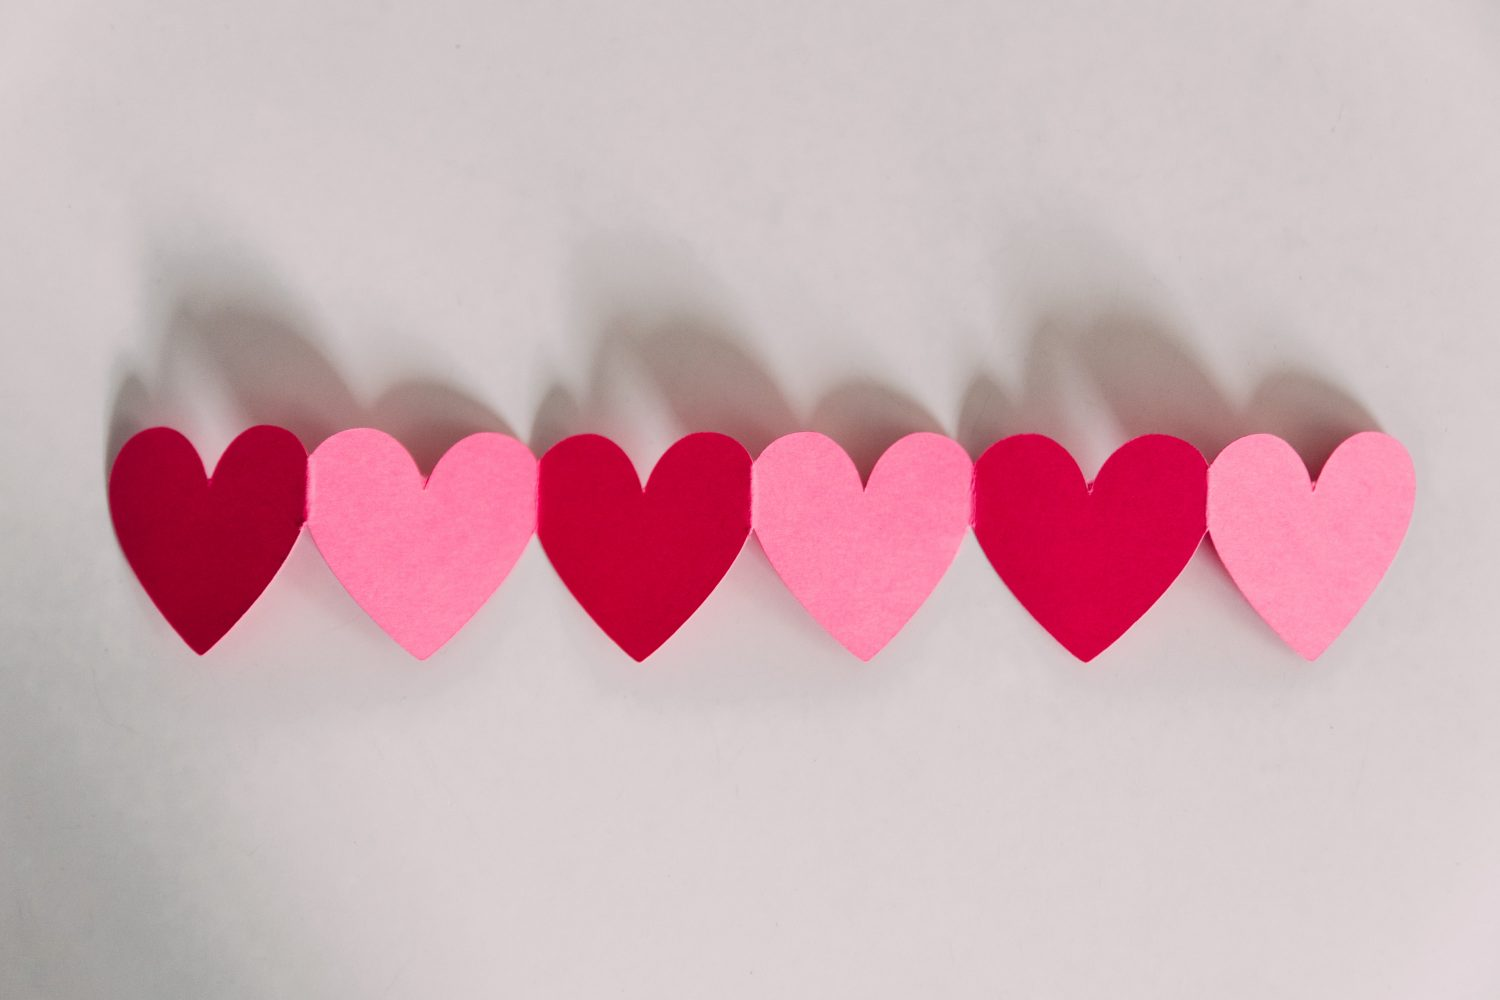 red and pink paper hearts by Kelly Sikkema